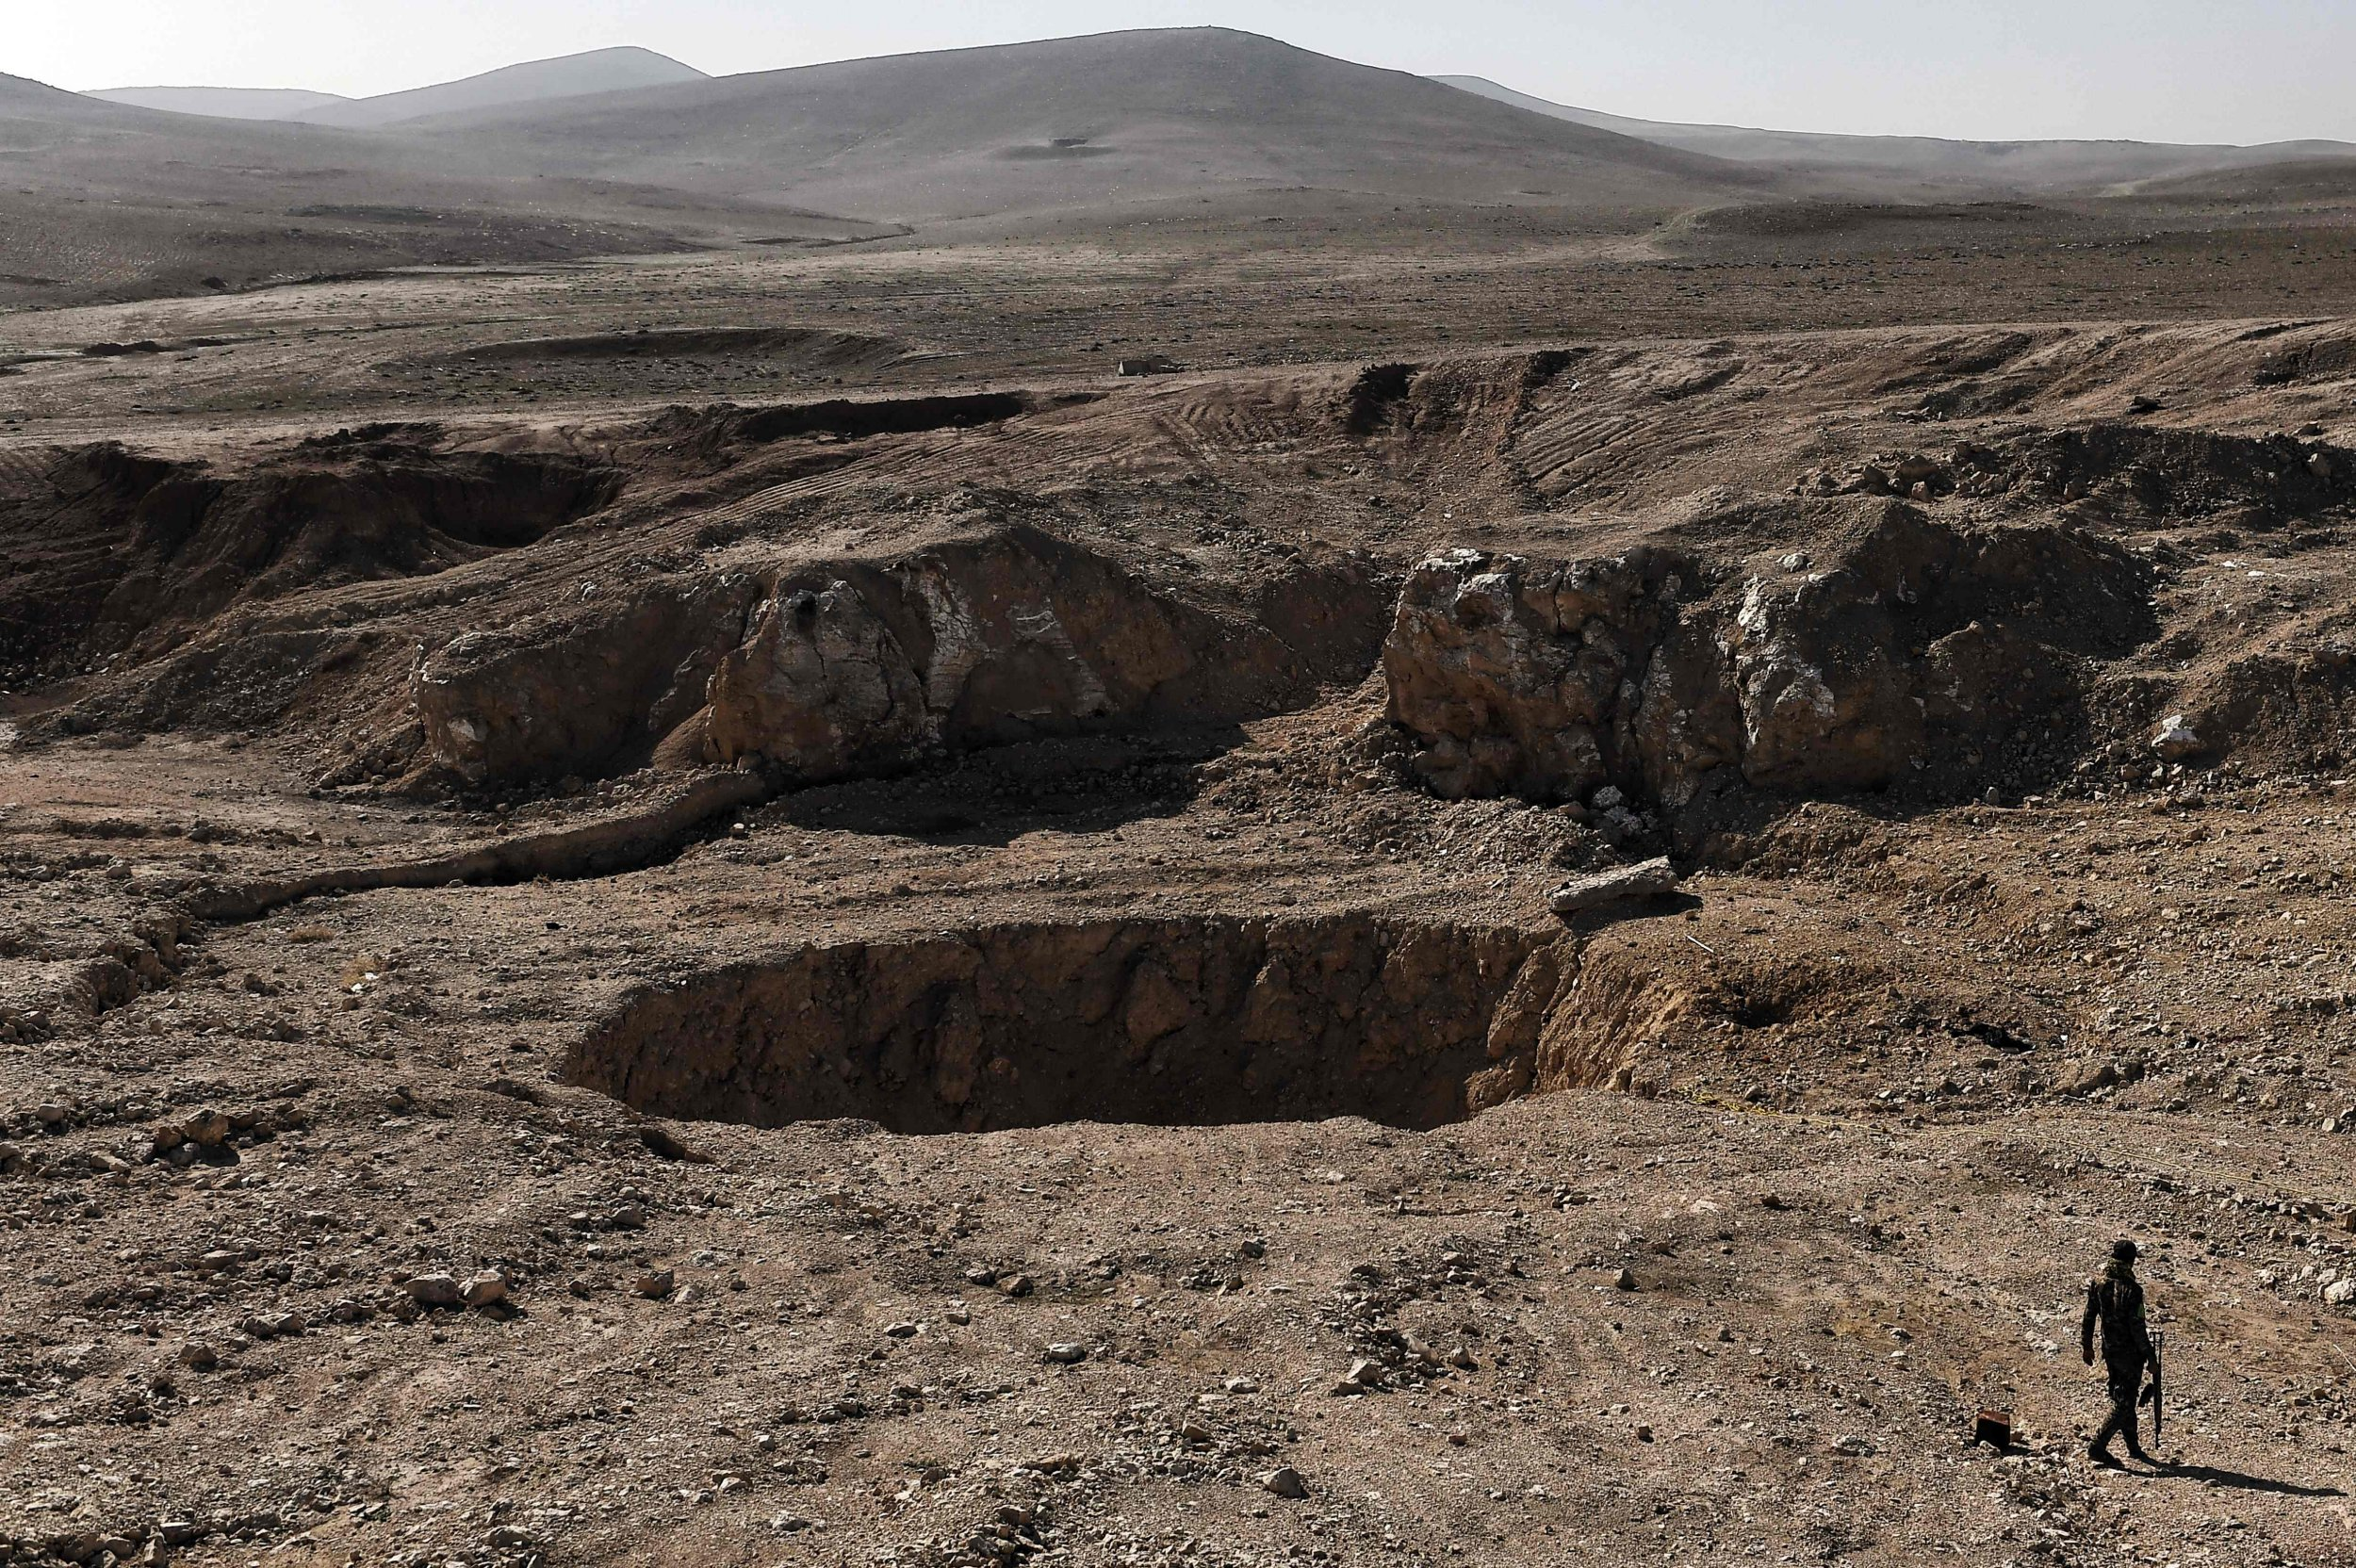 A member of the Hashed al-Shaabi (Popular Mobilisation) paramilitaries, walks next to a sinkhole, known as the Khasfah (an Arabic word for a crack or a hole that opens up in the ground), in the village of Athbah, south of Mosul on February 26, 2017. / AFP PHOTO / ARIS MESSINISARIS MESSINIS/AFP/Getty Images